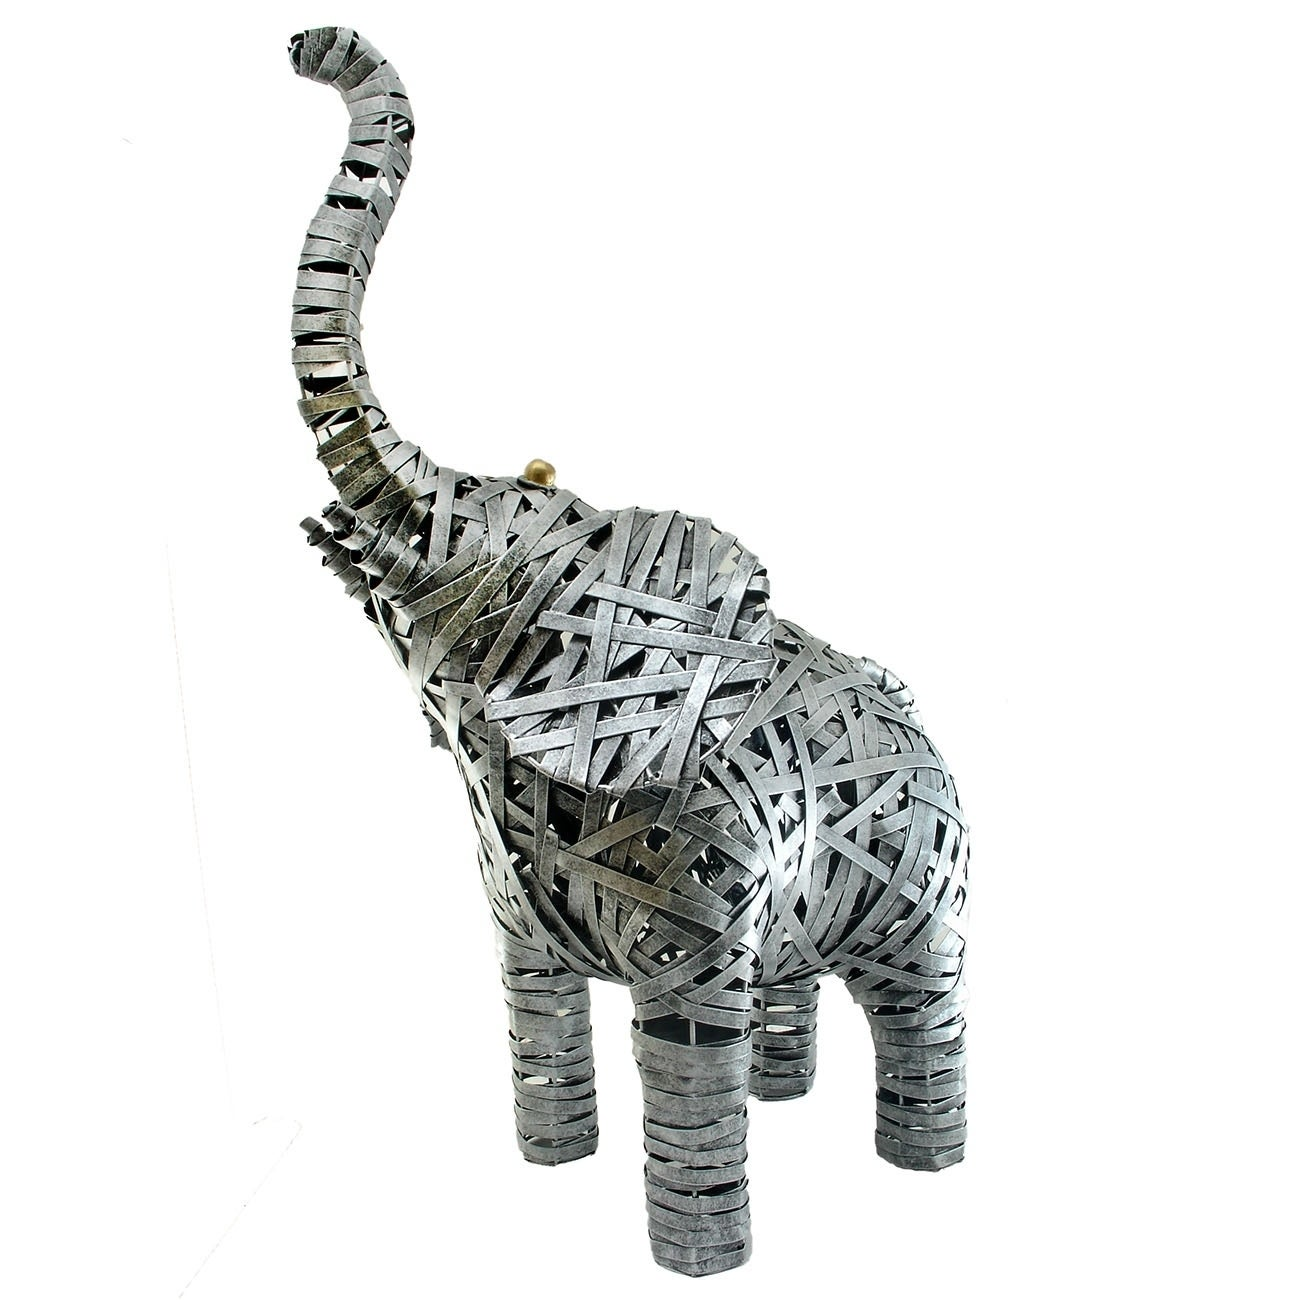 Handmade Gentle Giants Intricate Metal Elephant Statue Indonesia On Sale Overstock 27649483